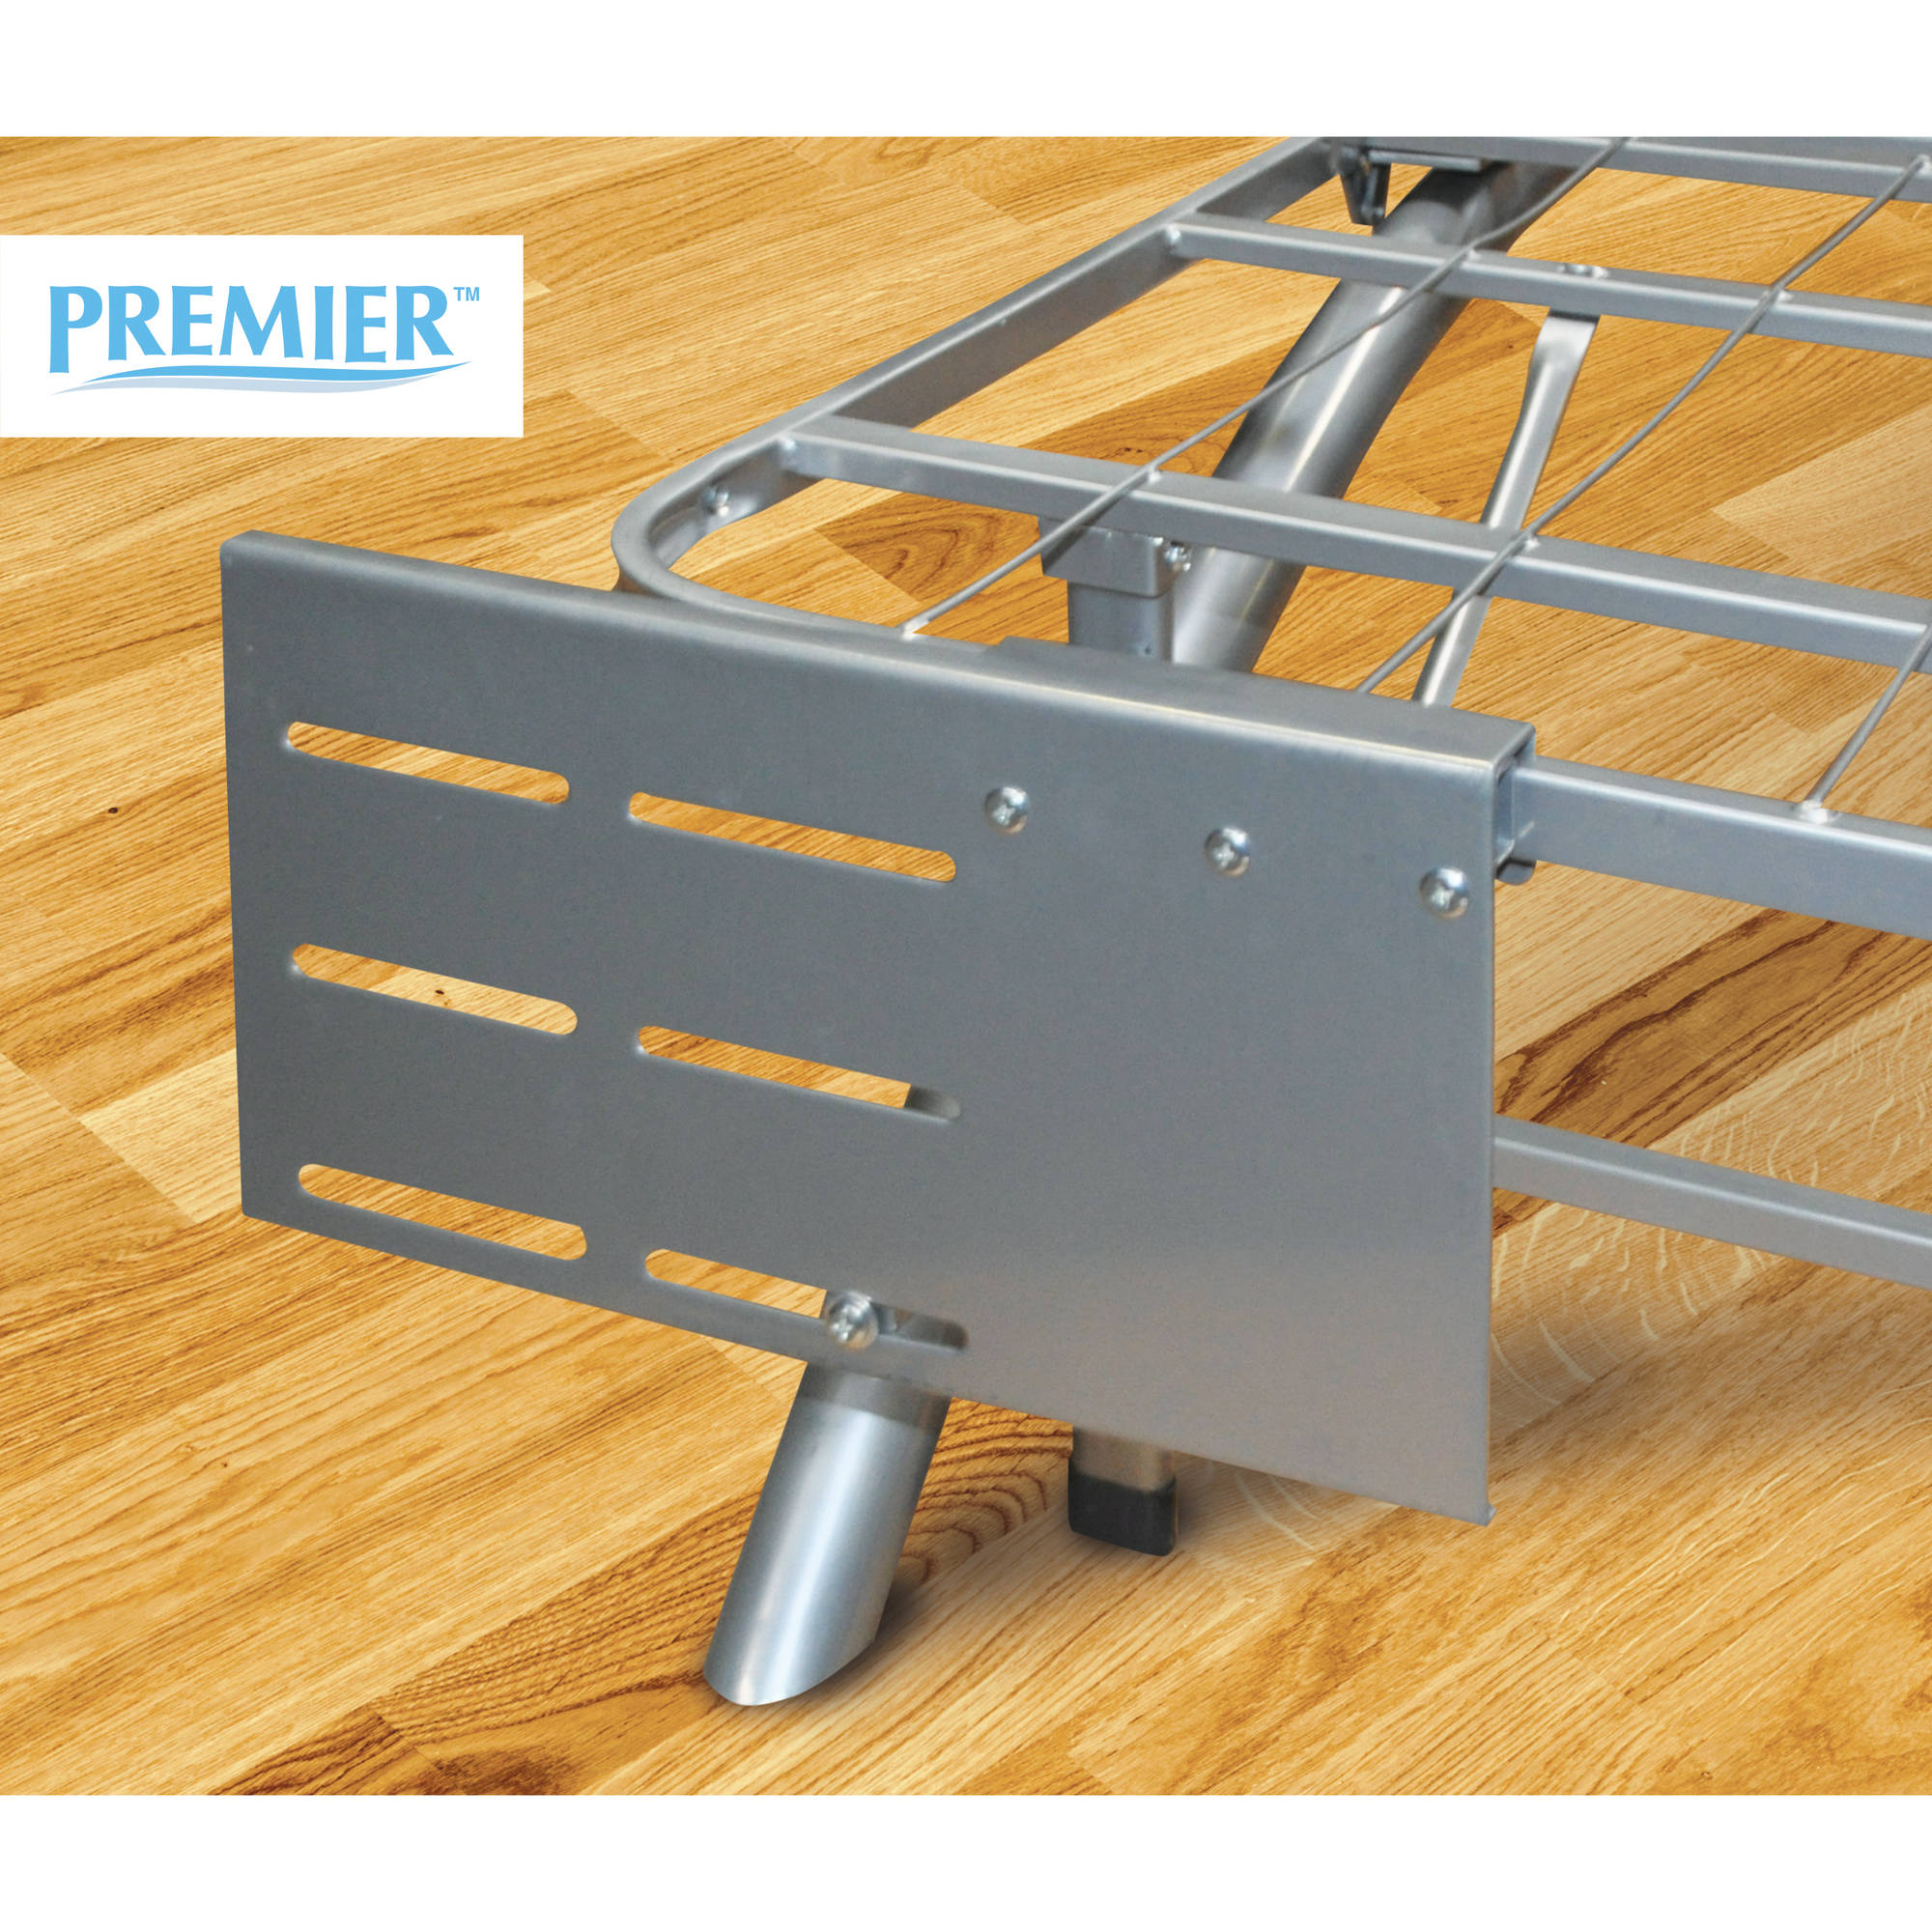 Premier Ellipse Headboard/Footboard Brackets, Silver